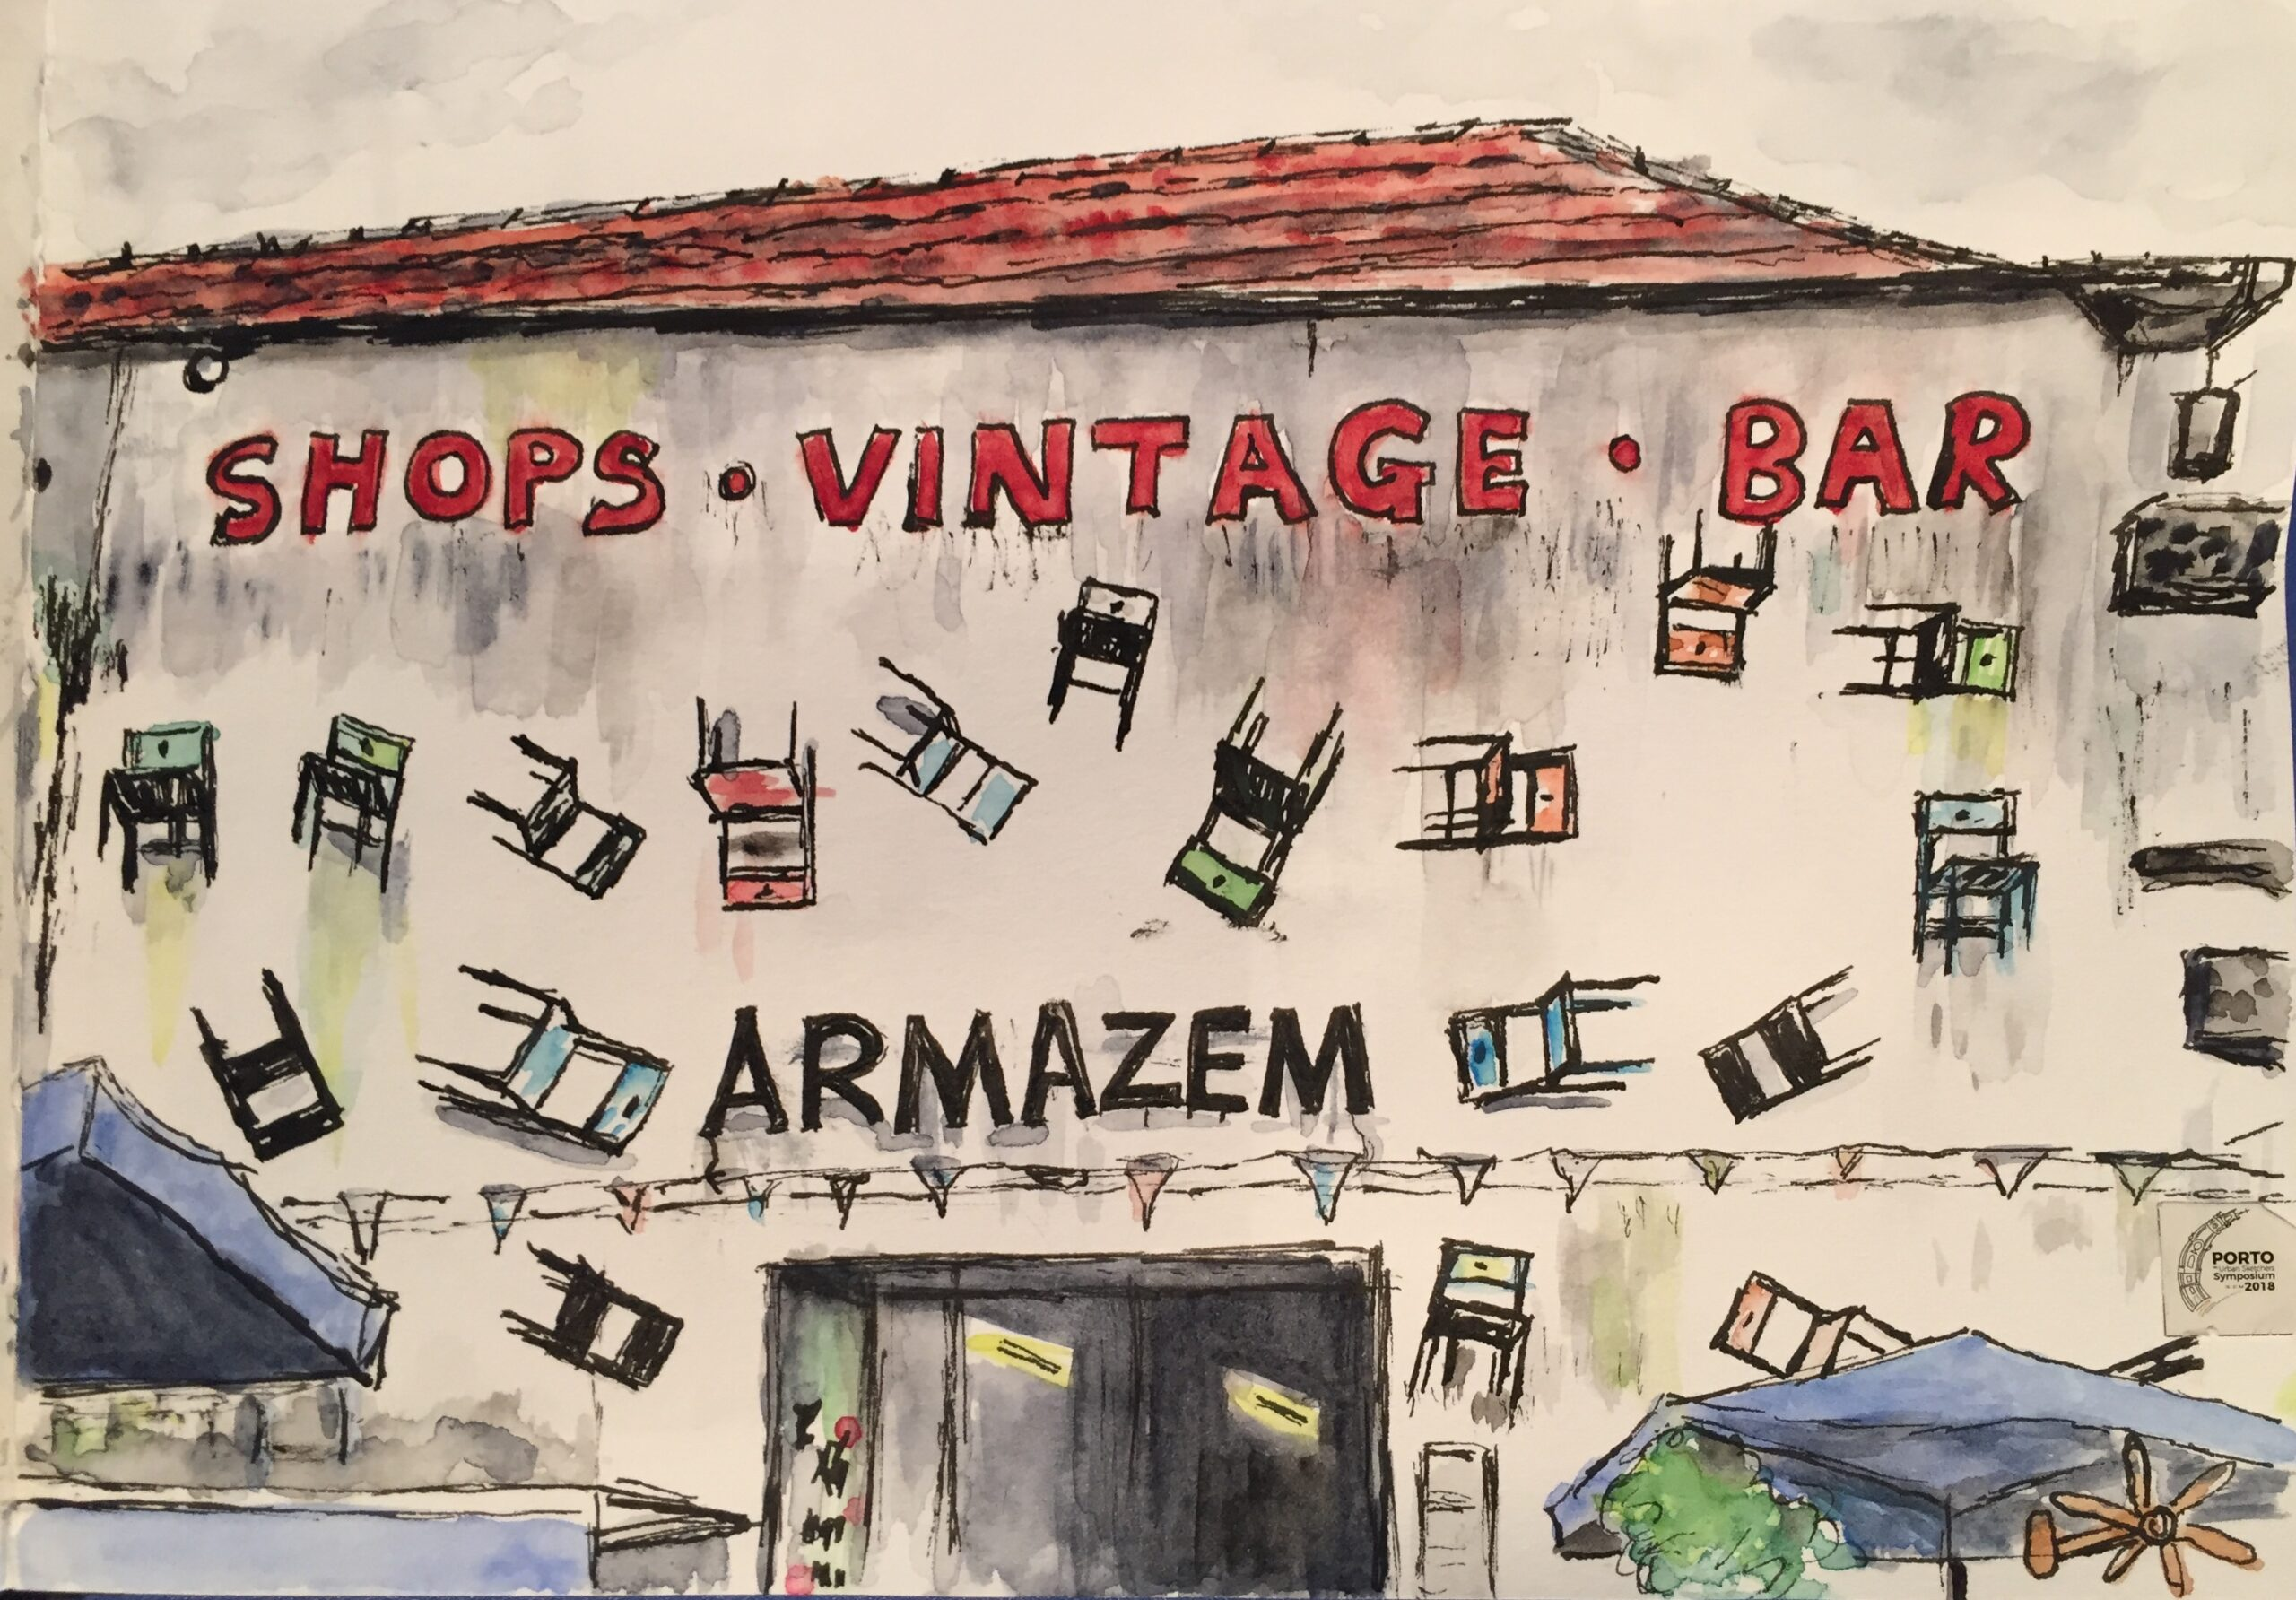 Watercolour sketch of vintage shops and bar in Porto